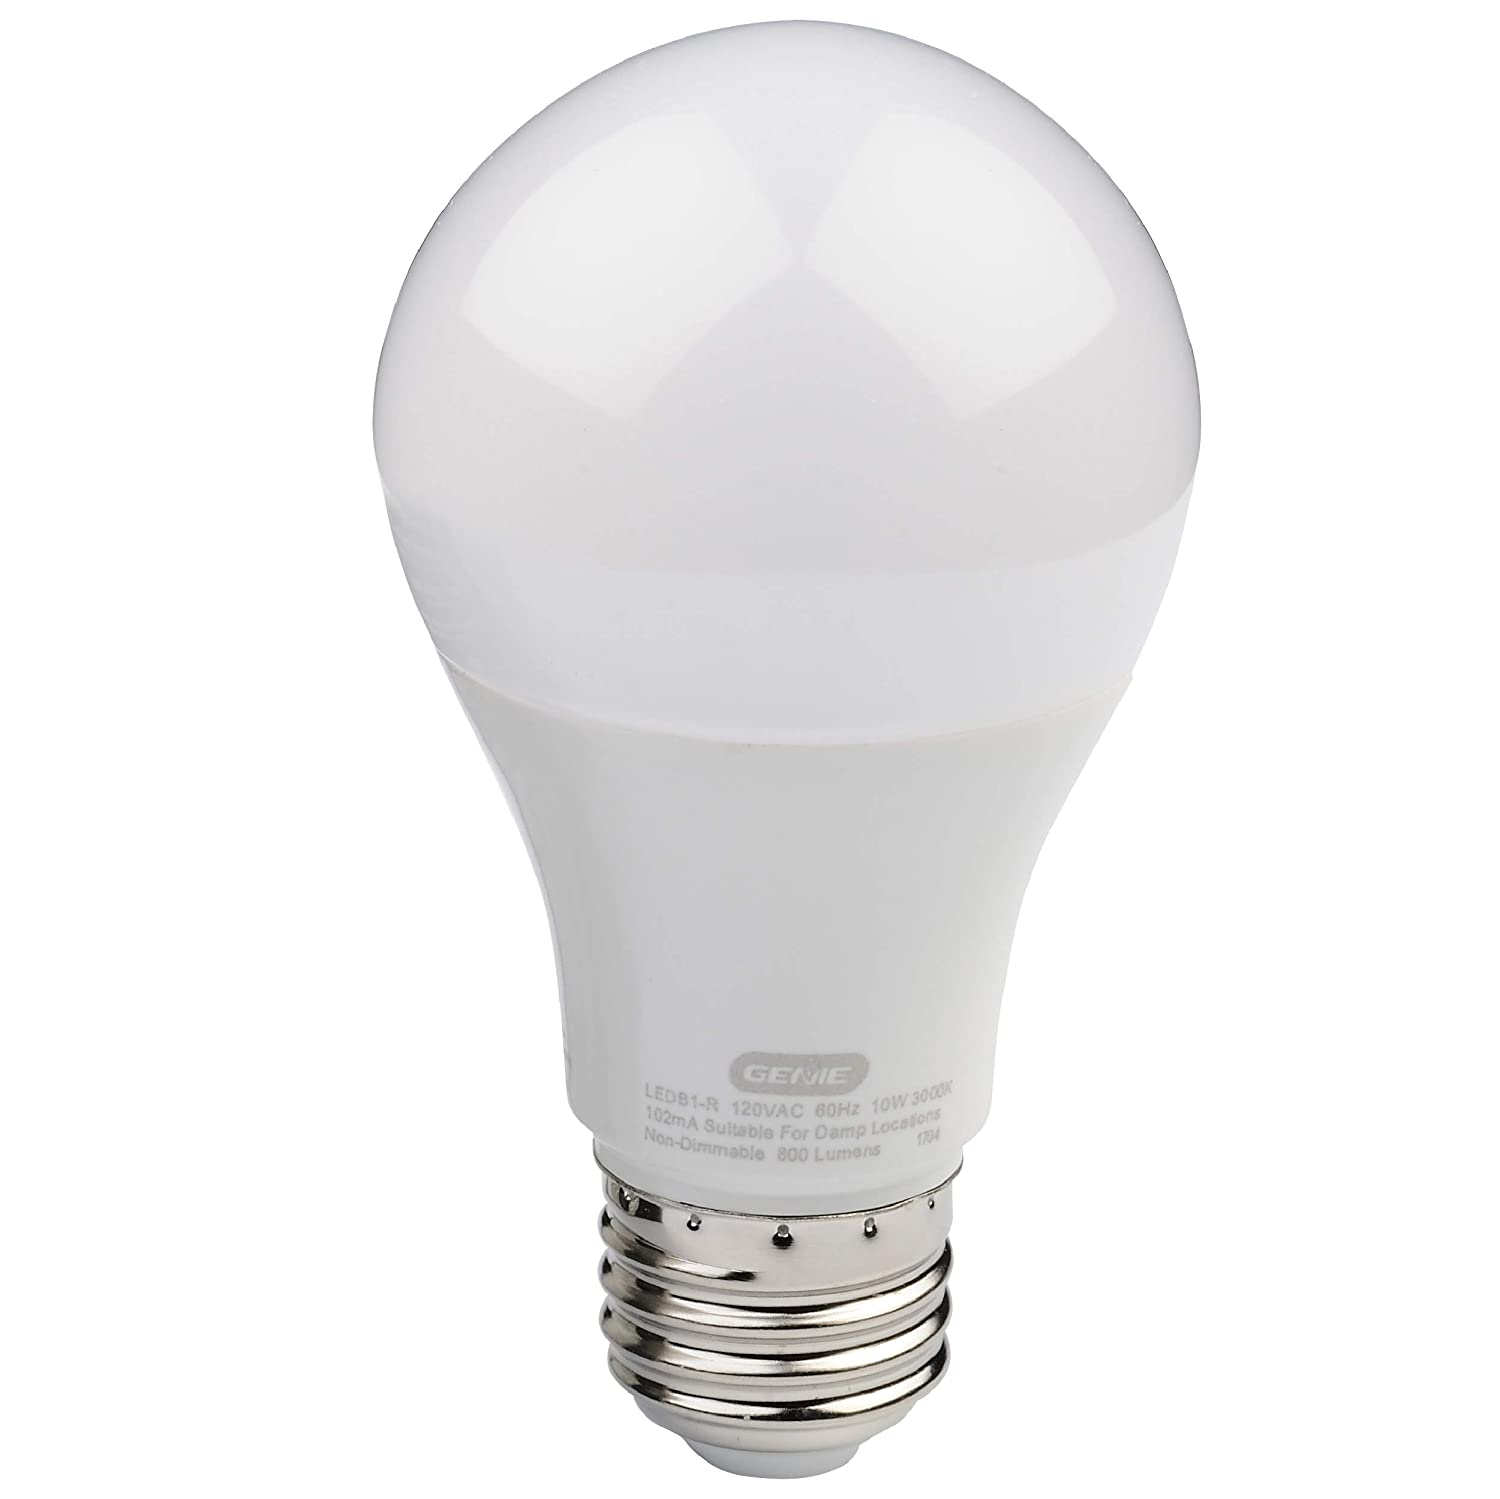 Garage Door Openers And Led Light Bulbs: Genie LED Garage Door Opener Light Bulb